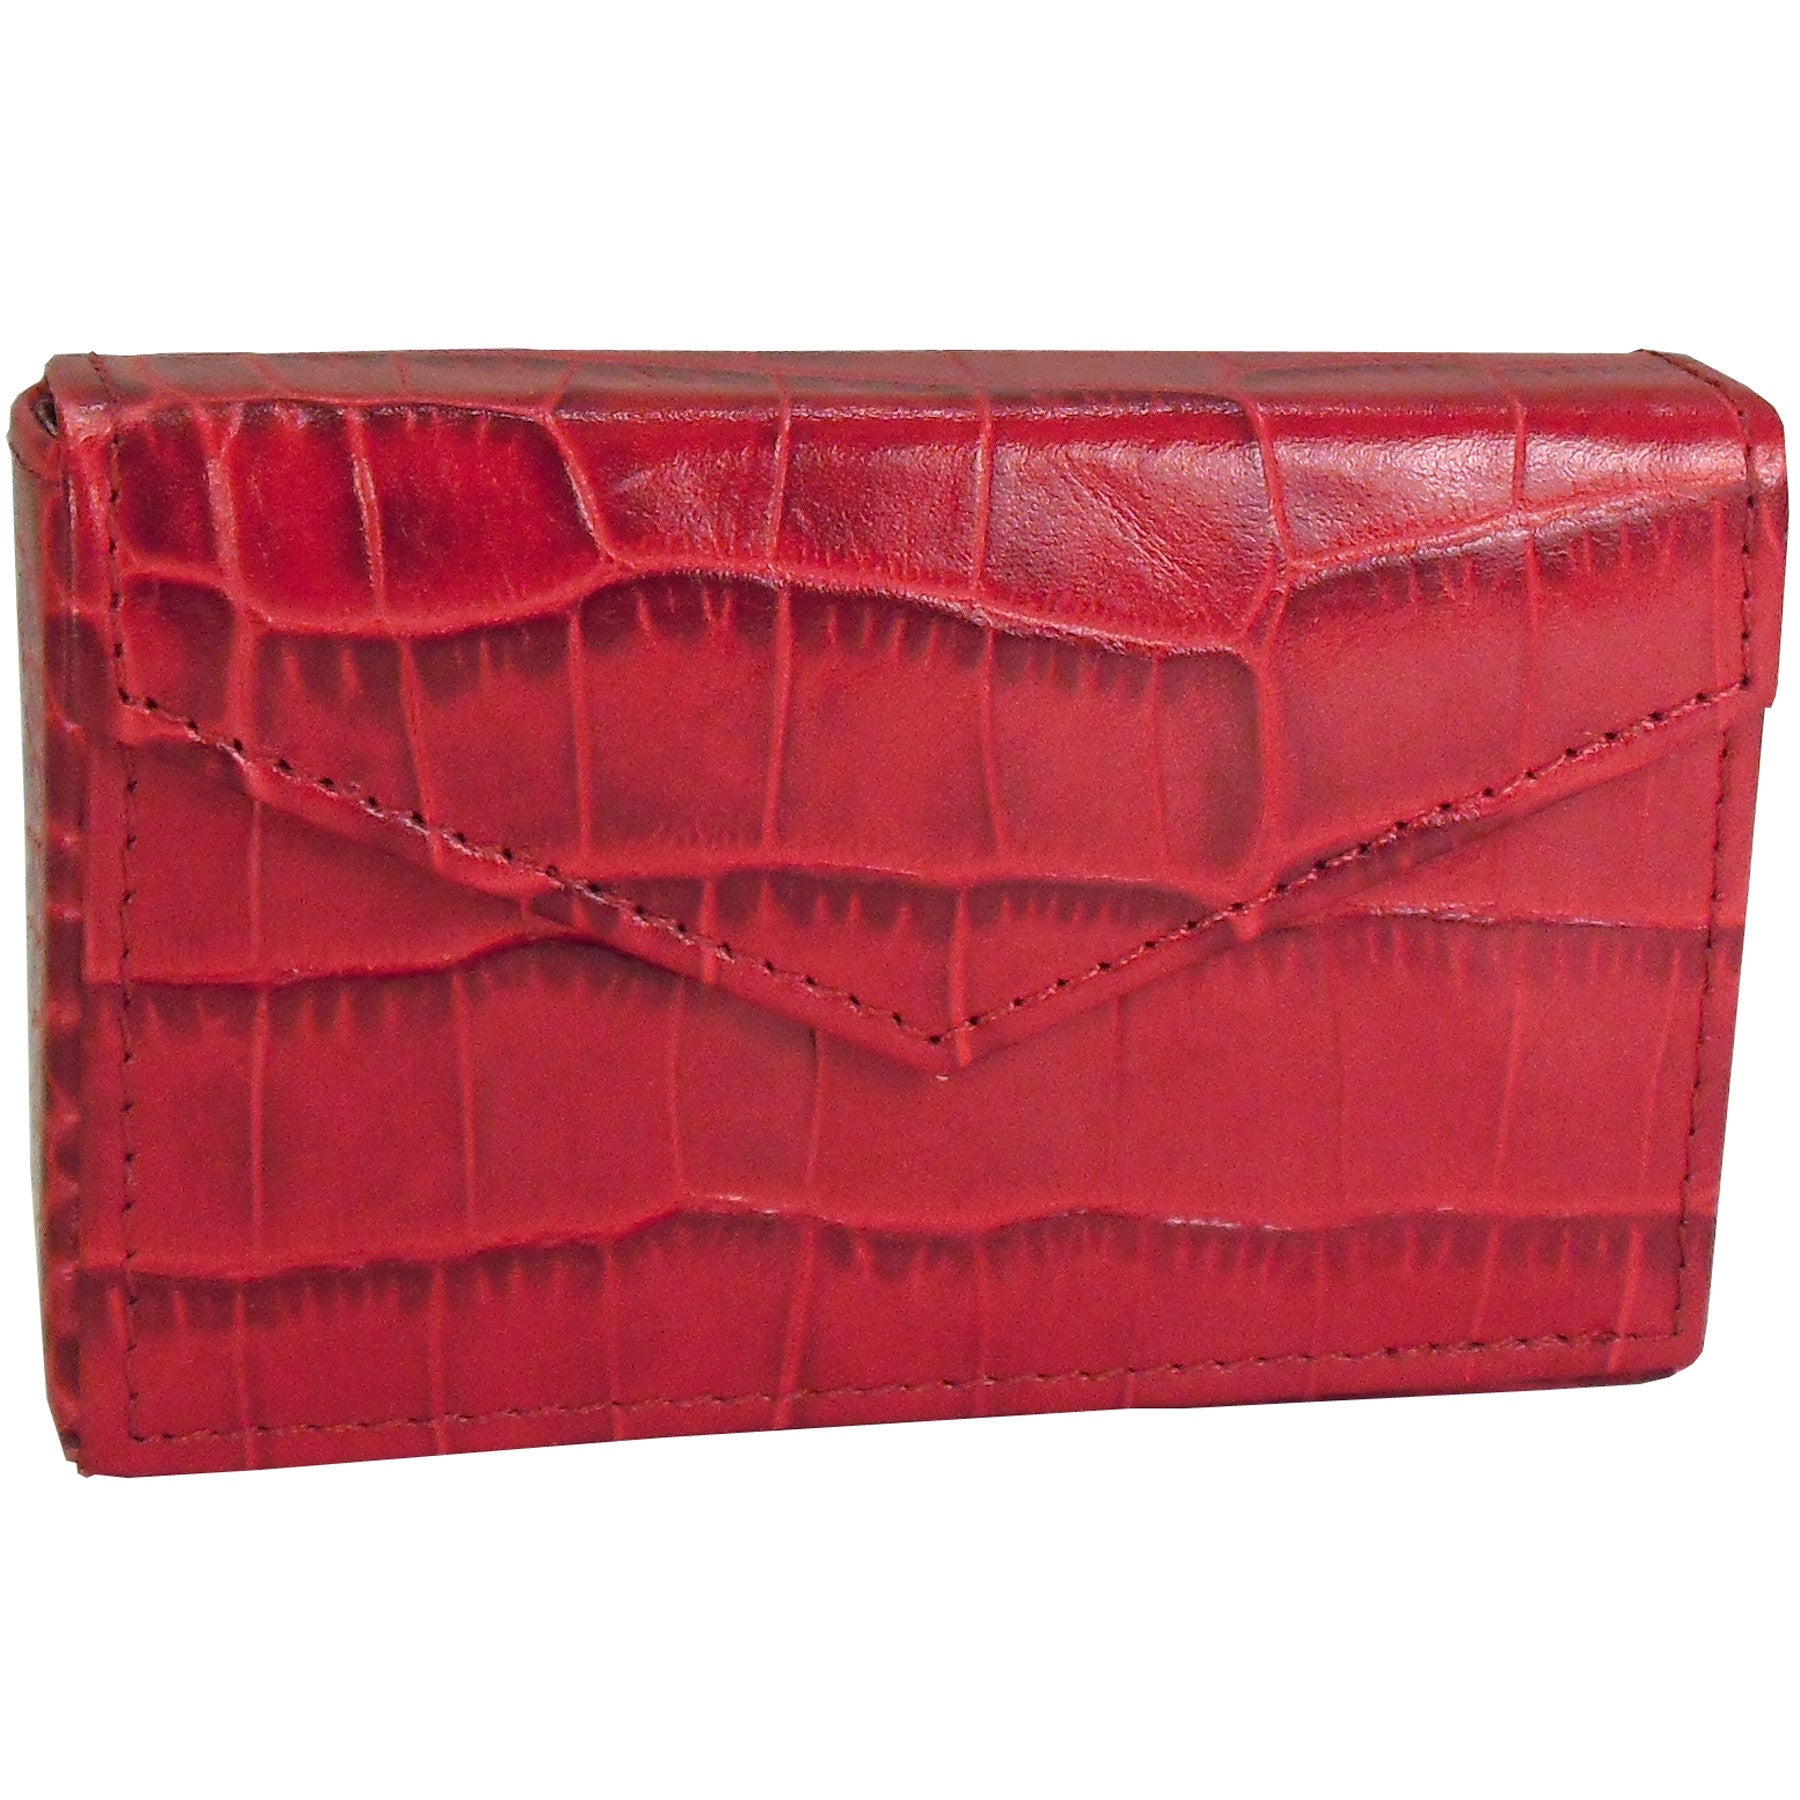 Alicia Klein leather card holder, red croco print